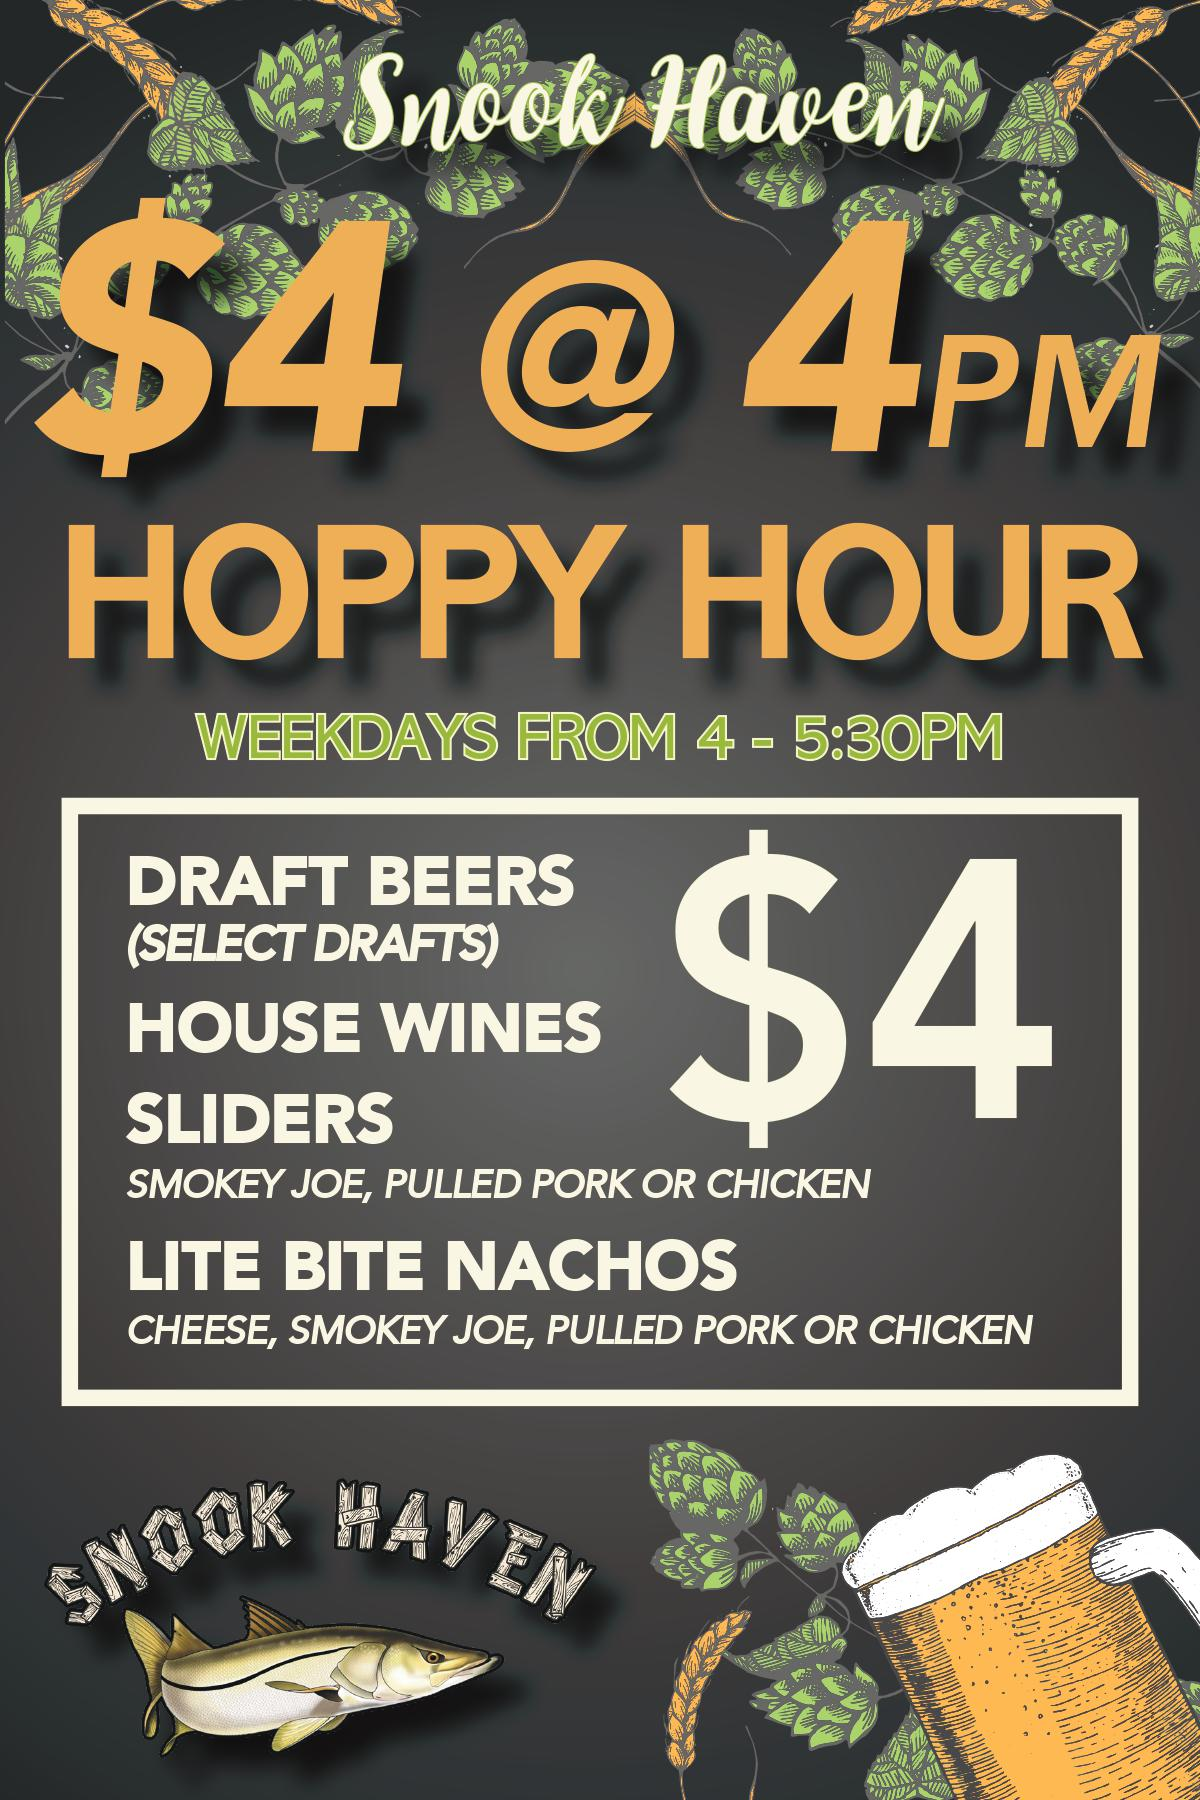 Hoppy Hour: $4 at 4 PM Weekday Happy Hour